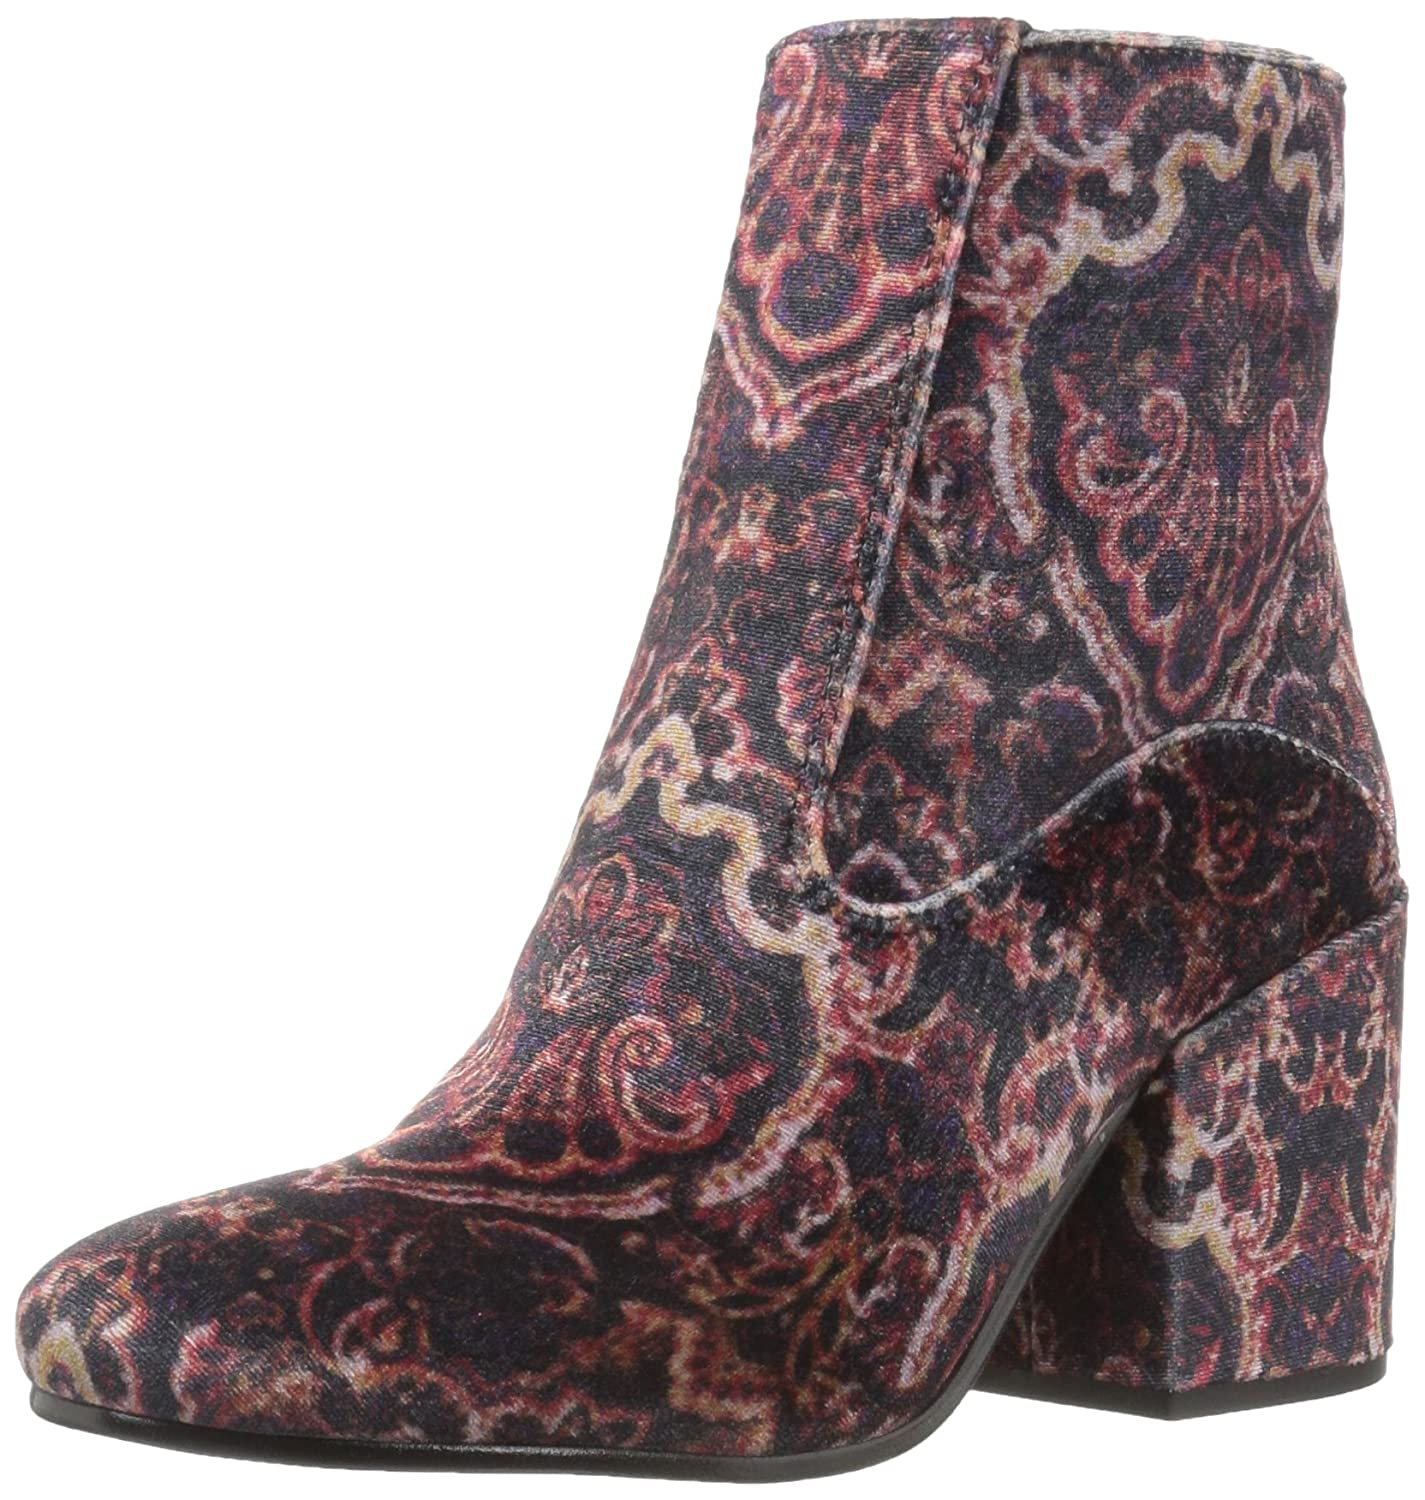 Lucky Brand Women's Rainns Ankle Boot B01NCOH5JL 8 B(M) US|Black Multi